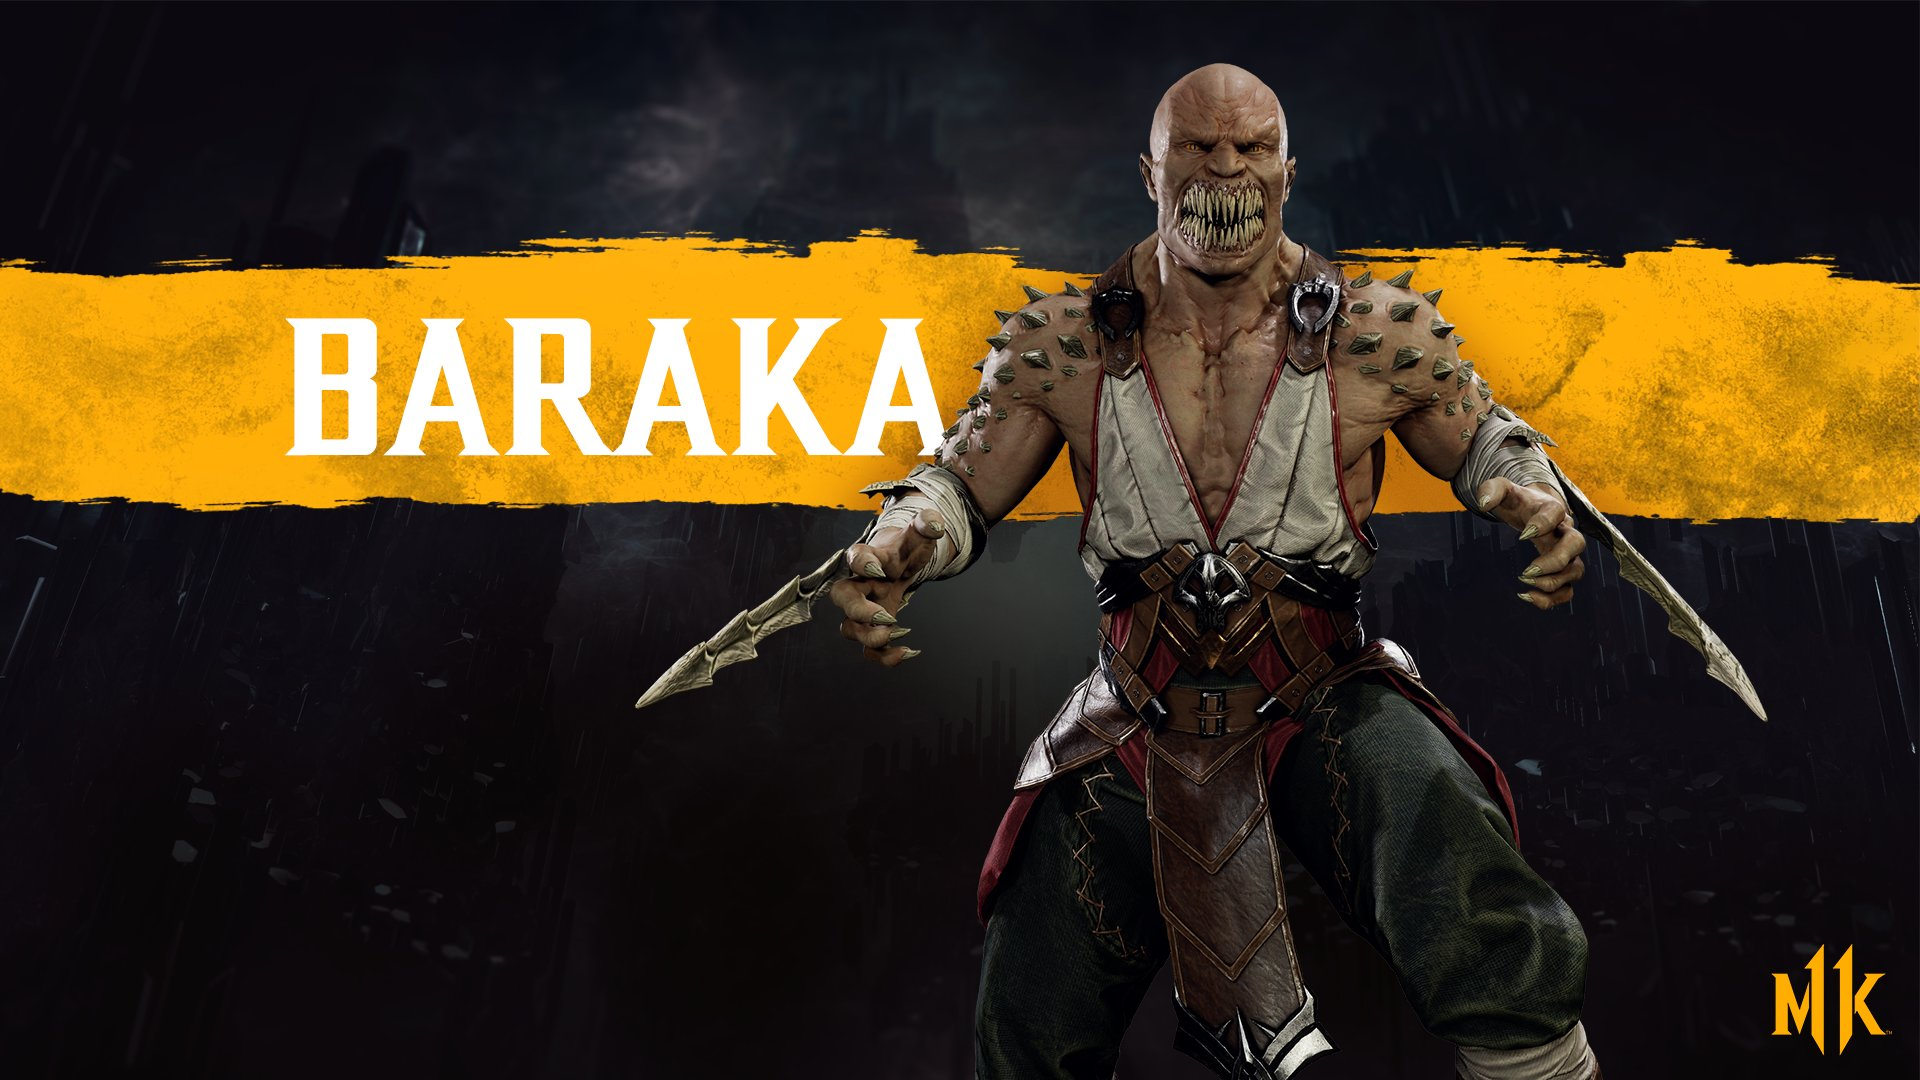 Mortal Kombat 11 Aftermath On Twitter The War Chief Of The